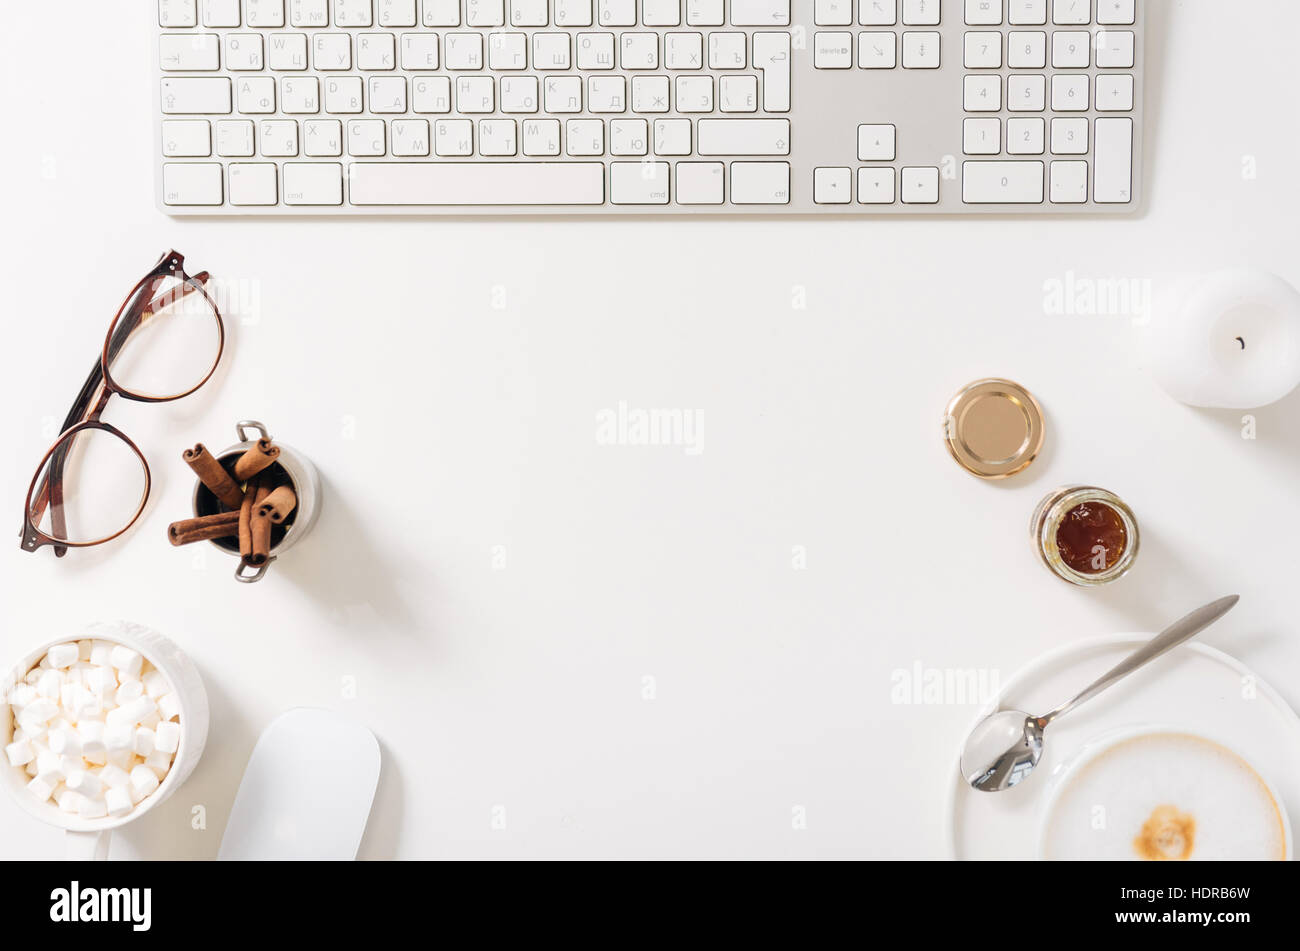 Top view of a freelancers workplace - Stock Image